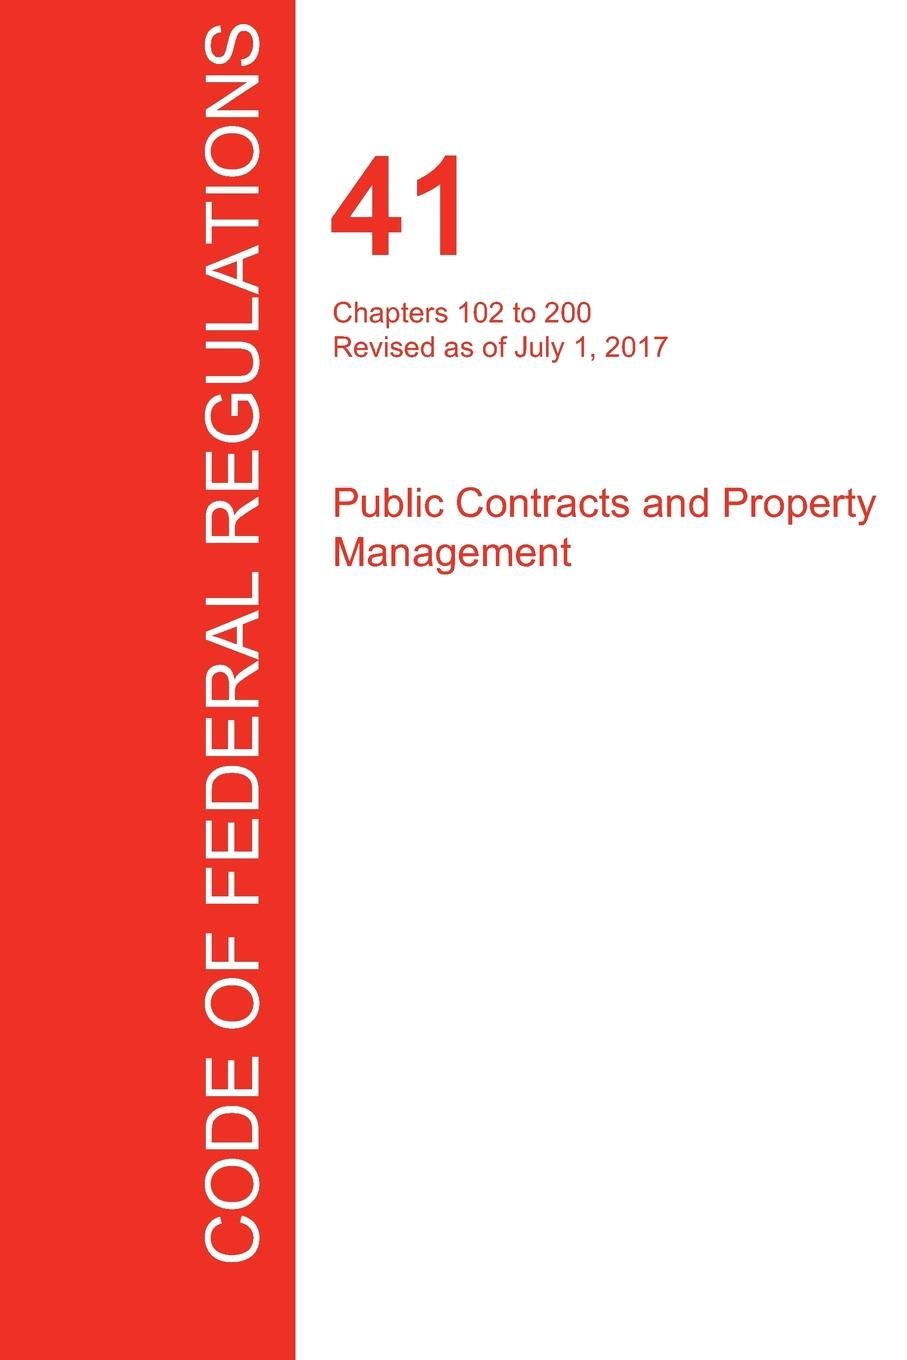 цена на CFR 41, Chapters 102 to 200, Public Contracts and Property Management, July 01, 2017 (Volume 3 of 4)